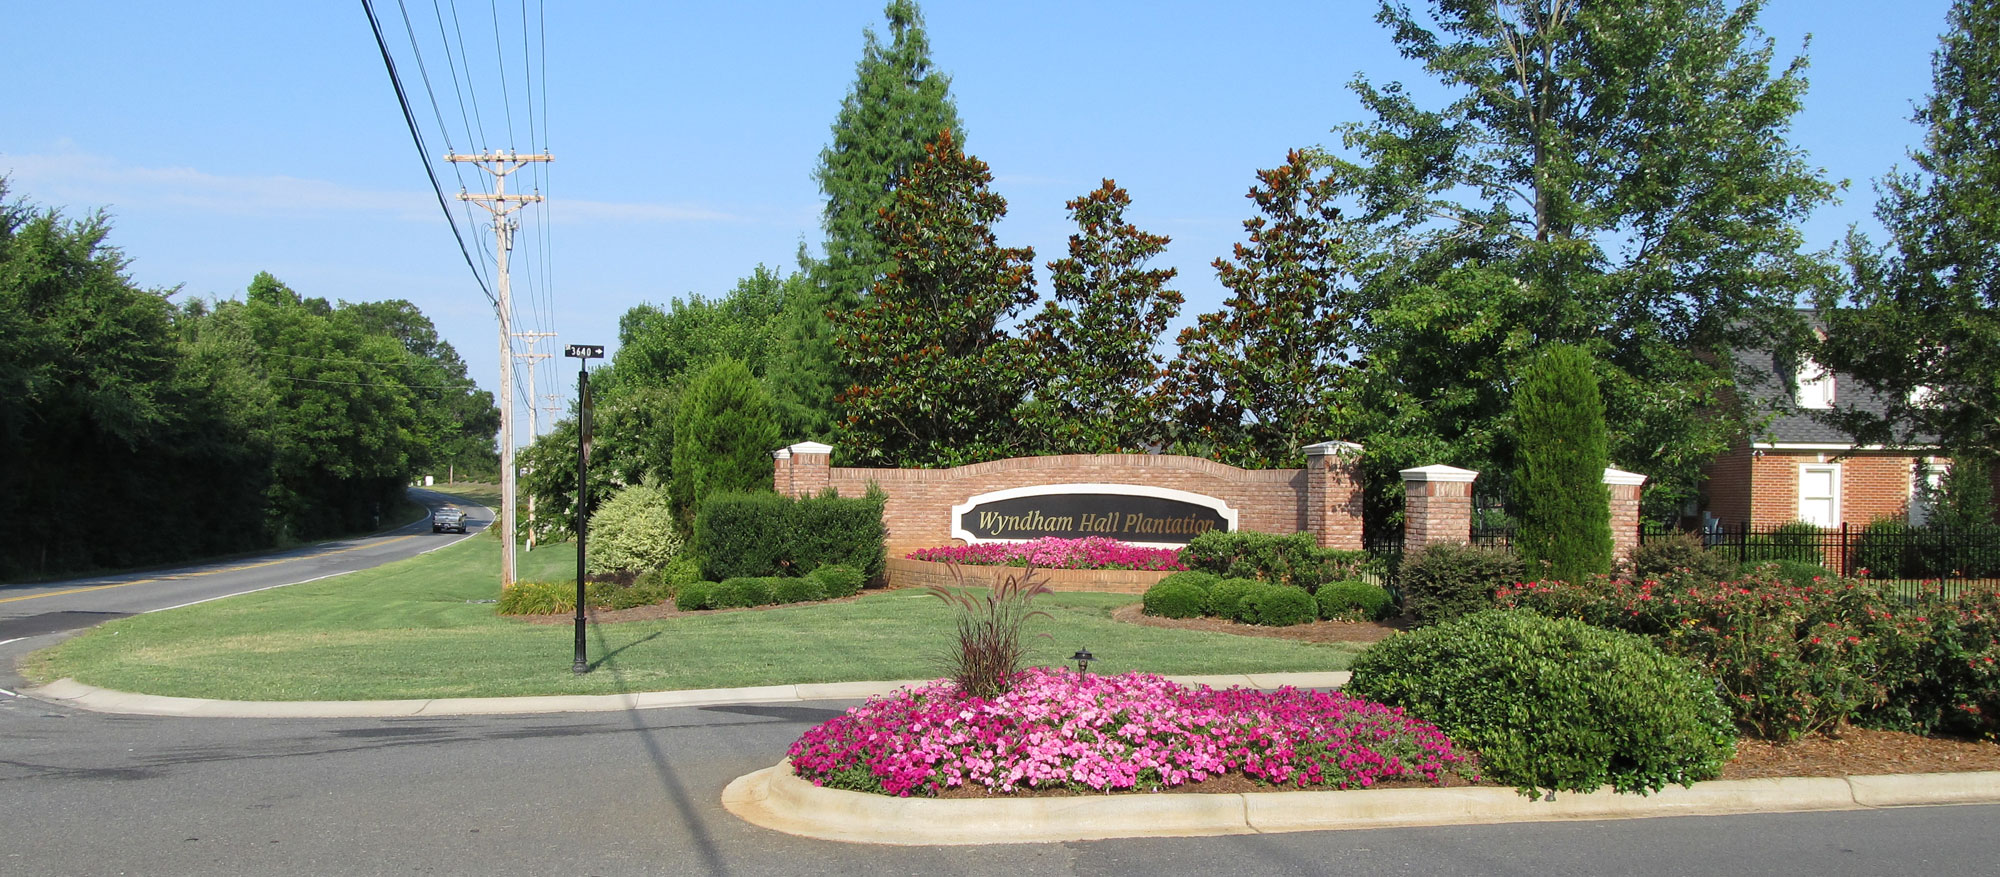 Top landscapers in charlotte nc - Top Landscapers In Charlotte Nc 59